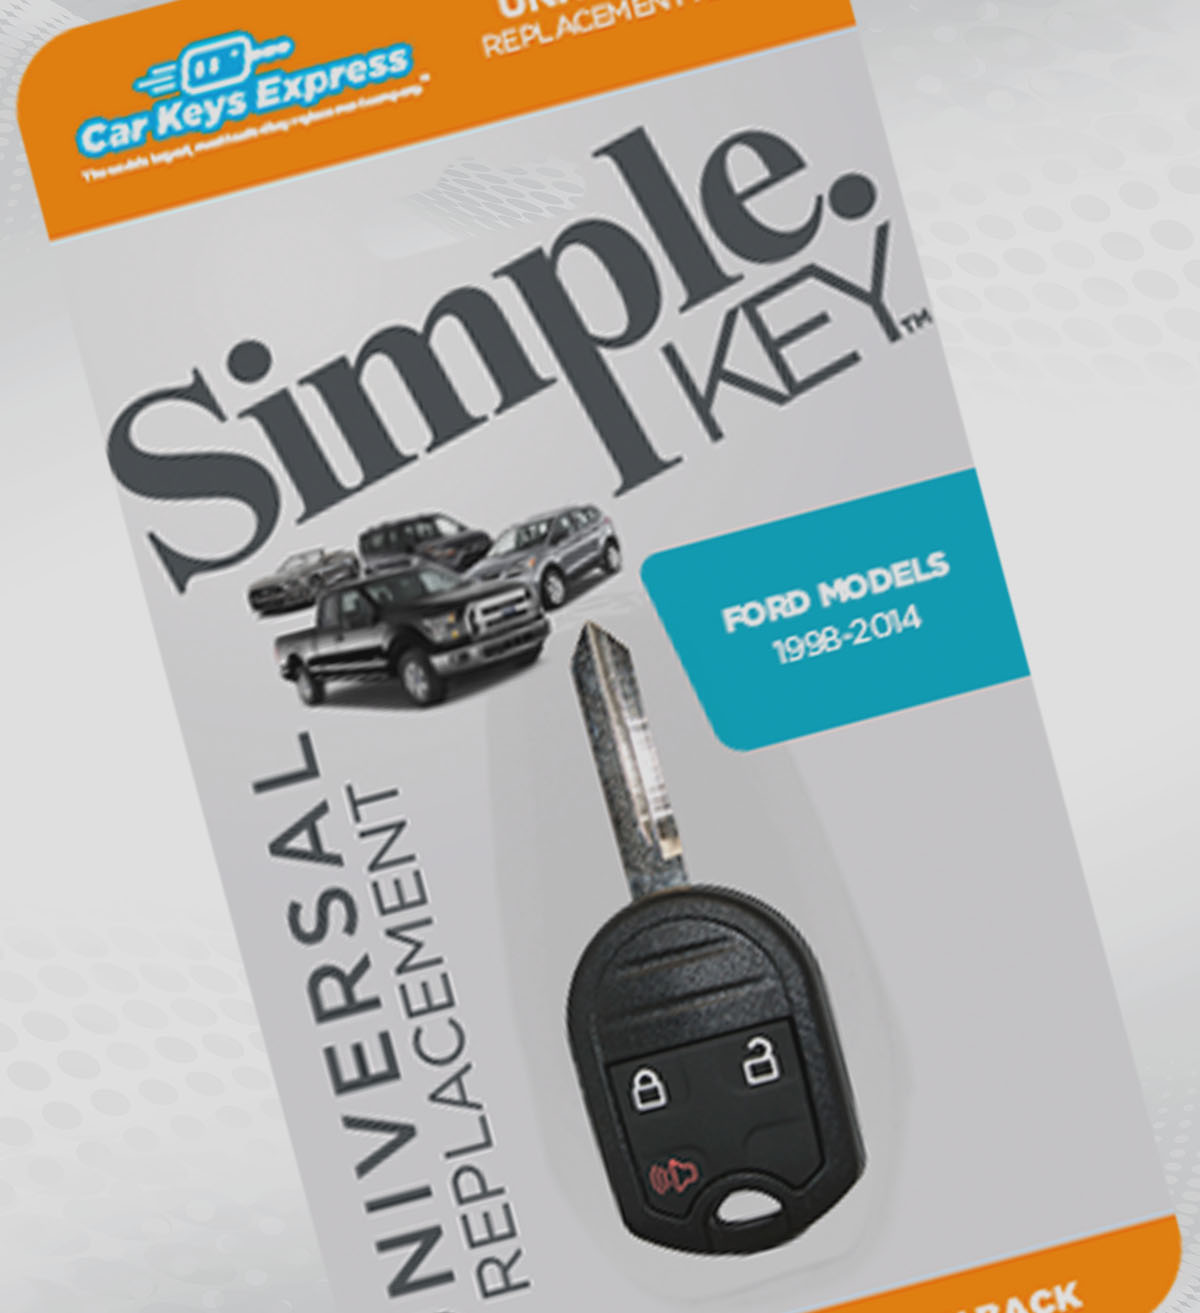 car keys express key machine